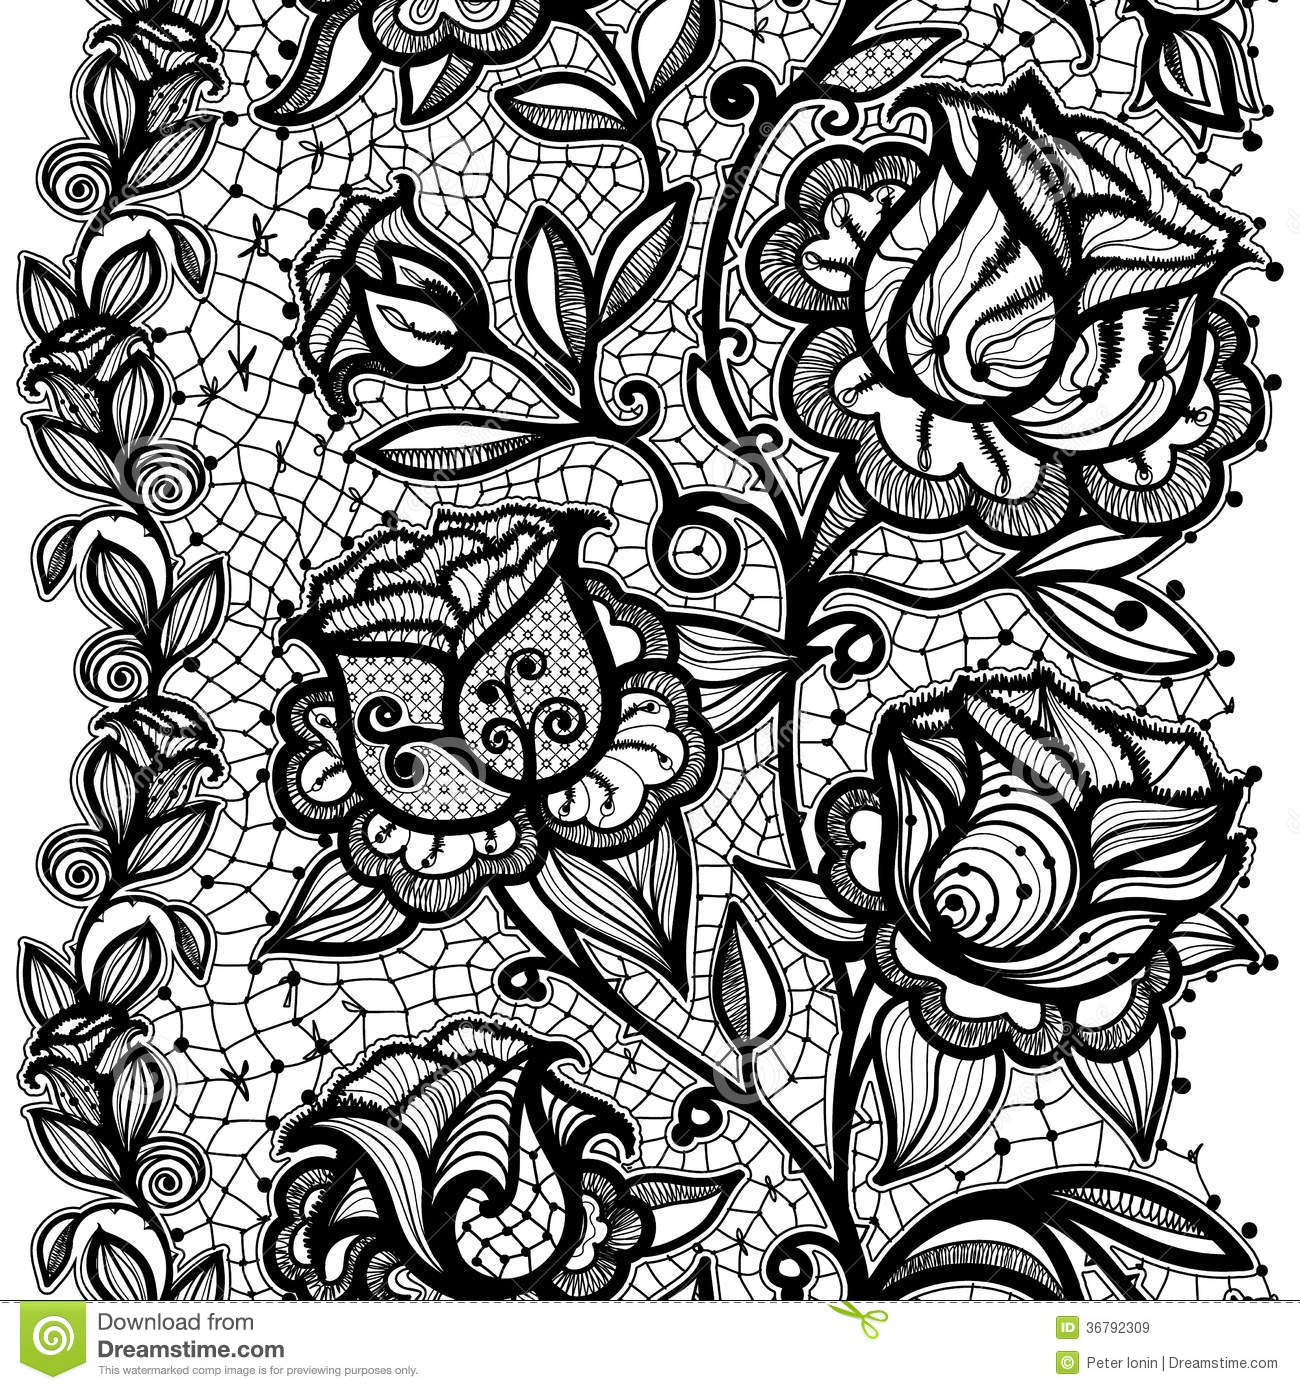 Simple lace patterns clipart - photo#8